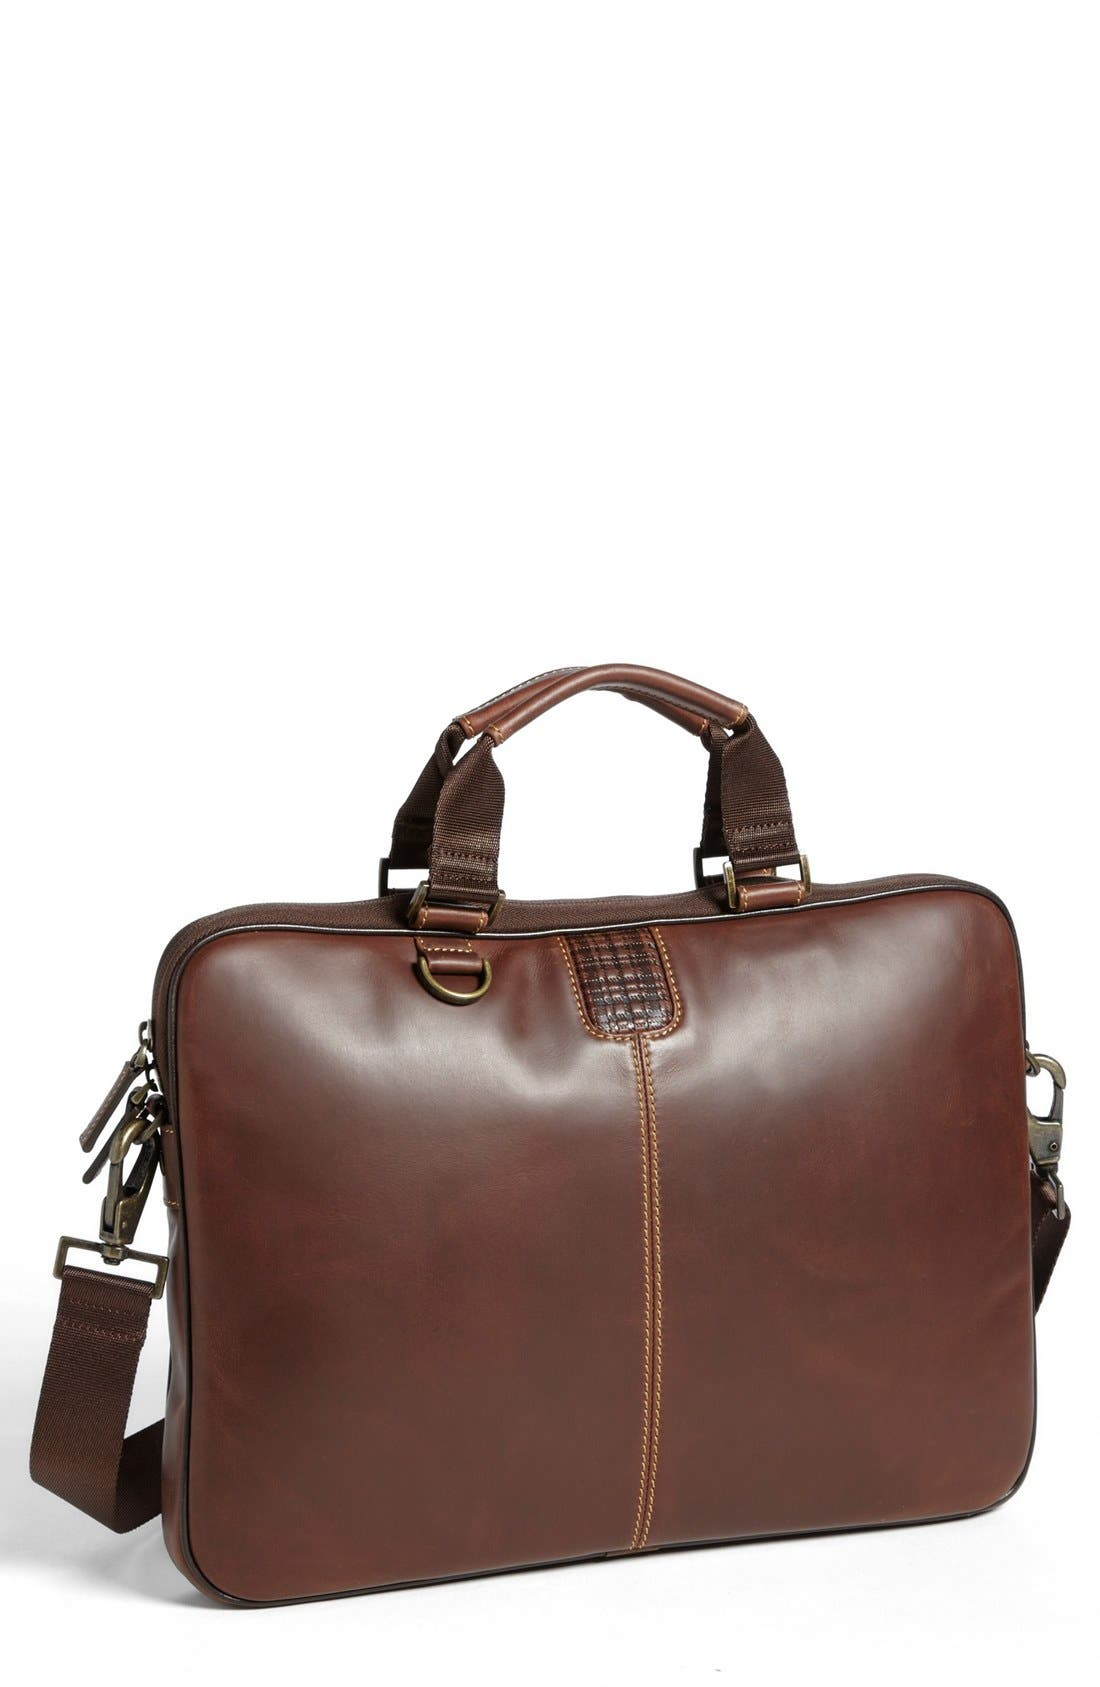 'Bryant' Slim Leather Laptop Briefcase,                             Main thumbnail 1, color,                             ANTIQUE MAHOGANY/ HOUNDSTOOTH